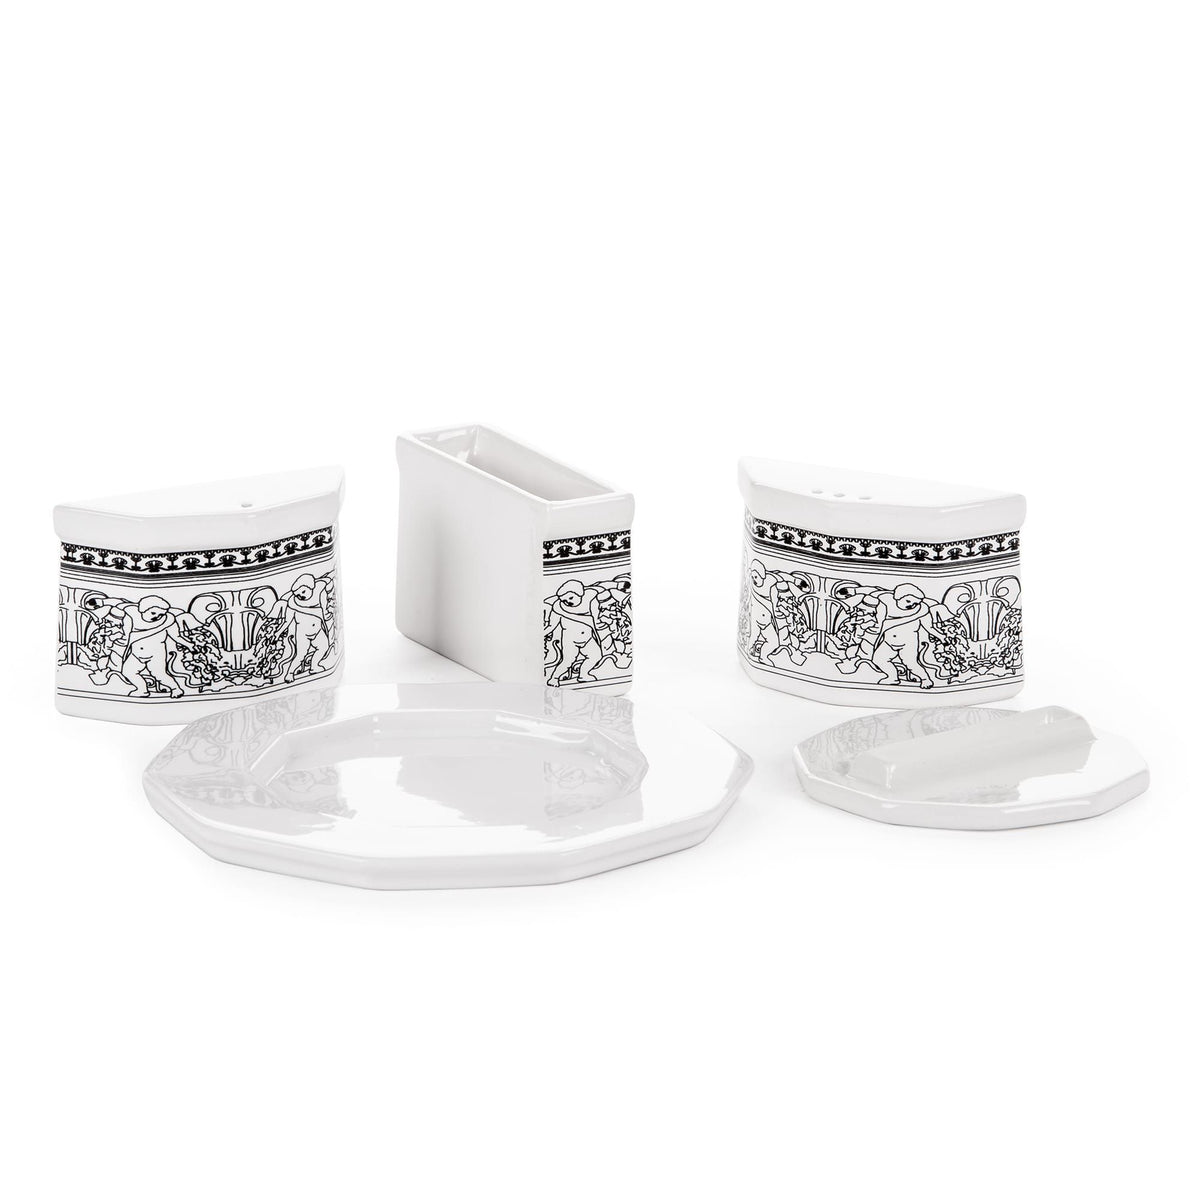 Palace Fontana - Salt and Pepper Shakers